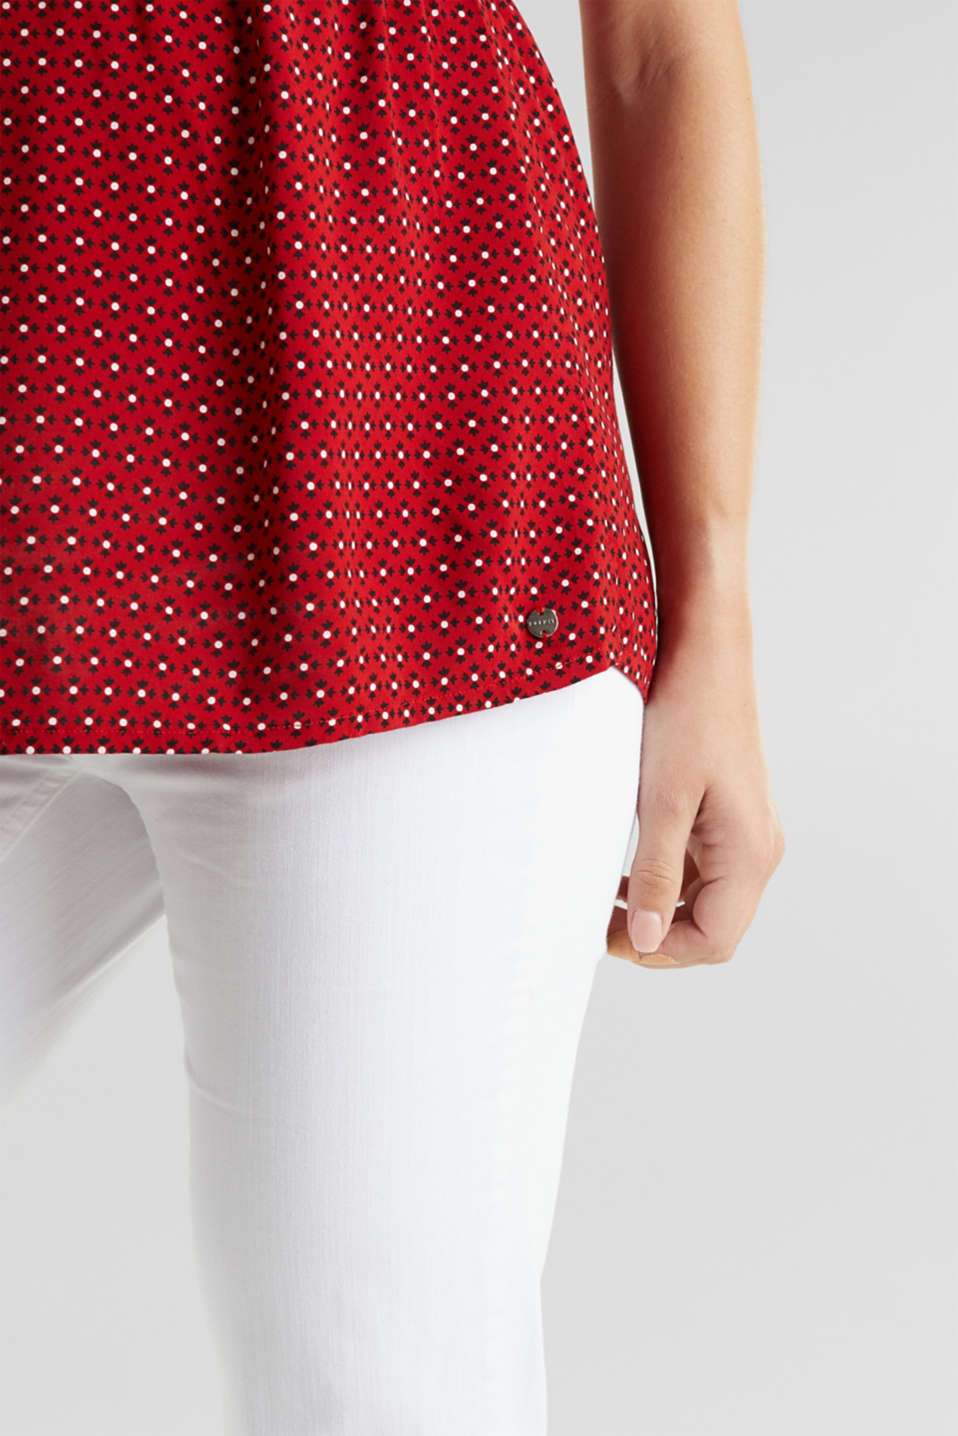 Blouse top for nursing, LCRED, detail image number 2